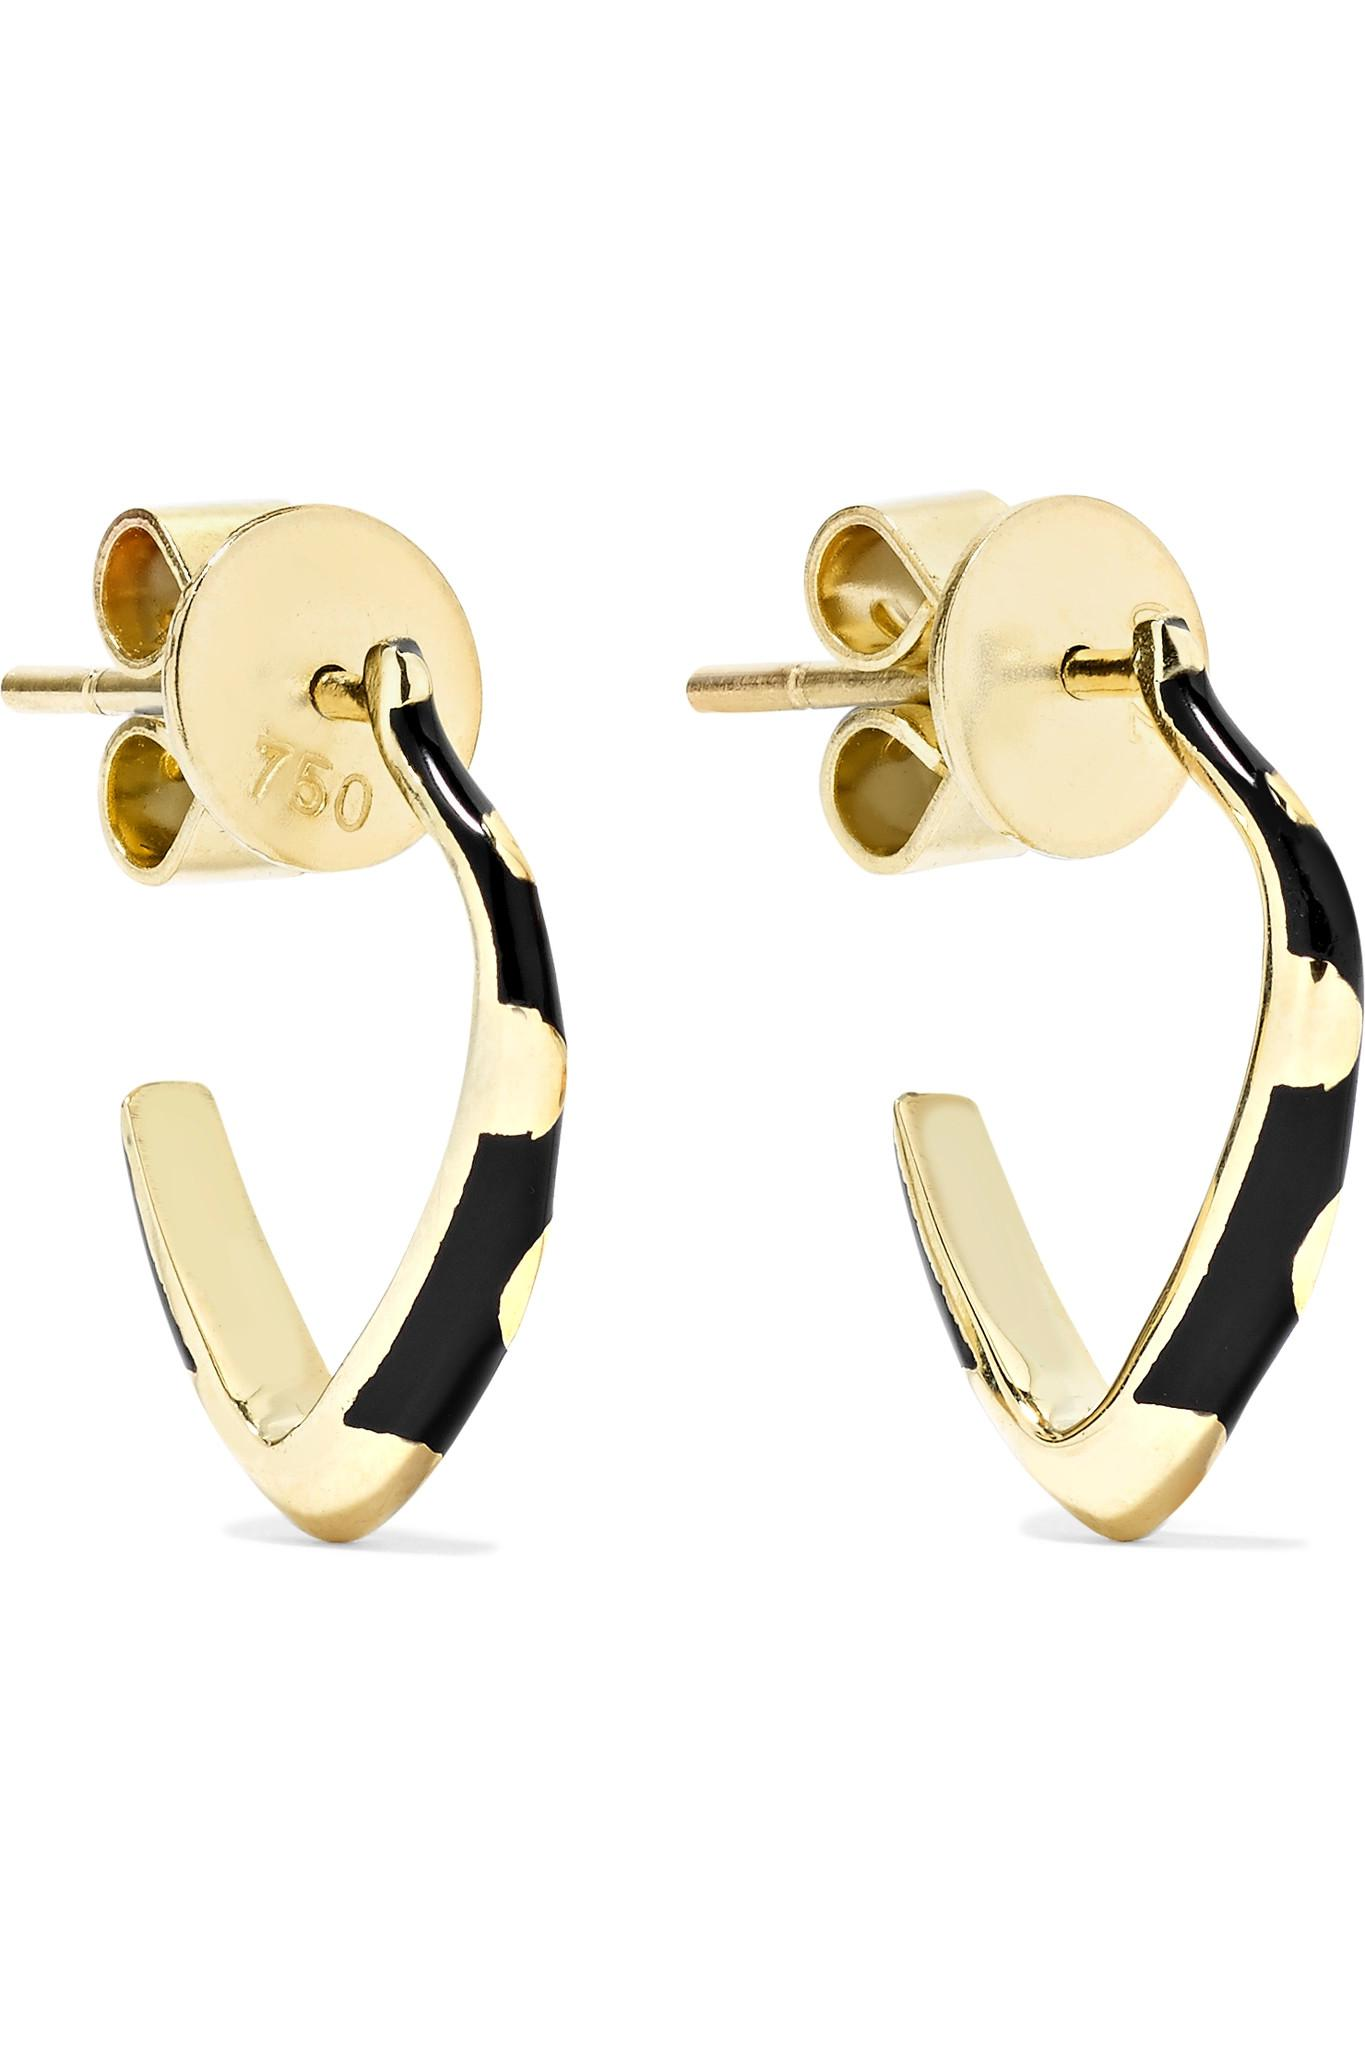 Alice Cicolini Memphis Candy Enameled 14-karat Gold Diamond Earrings